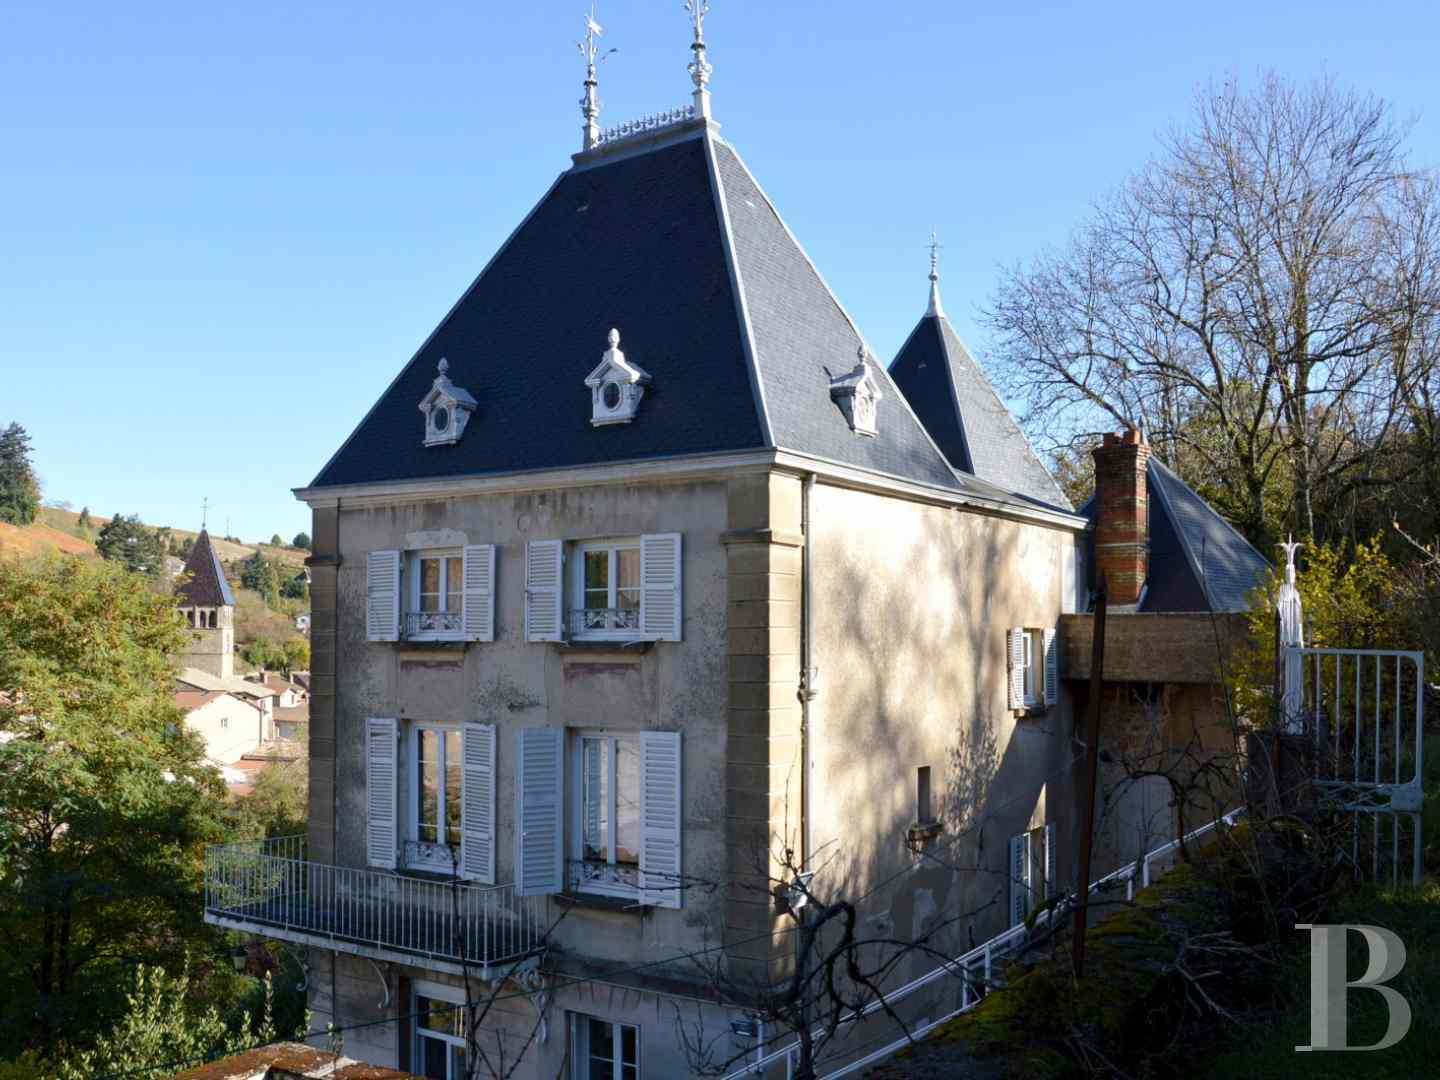 property for sale France rhones alps residence beaujolais - 3 zoom